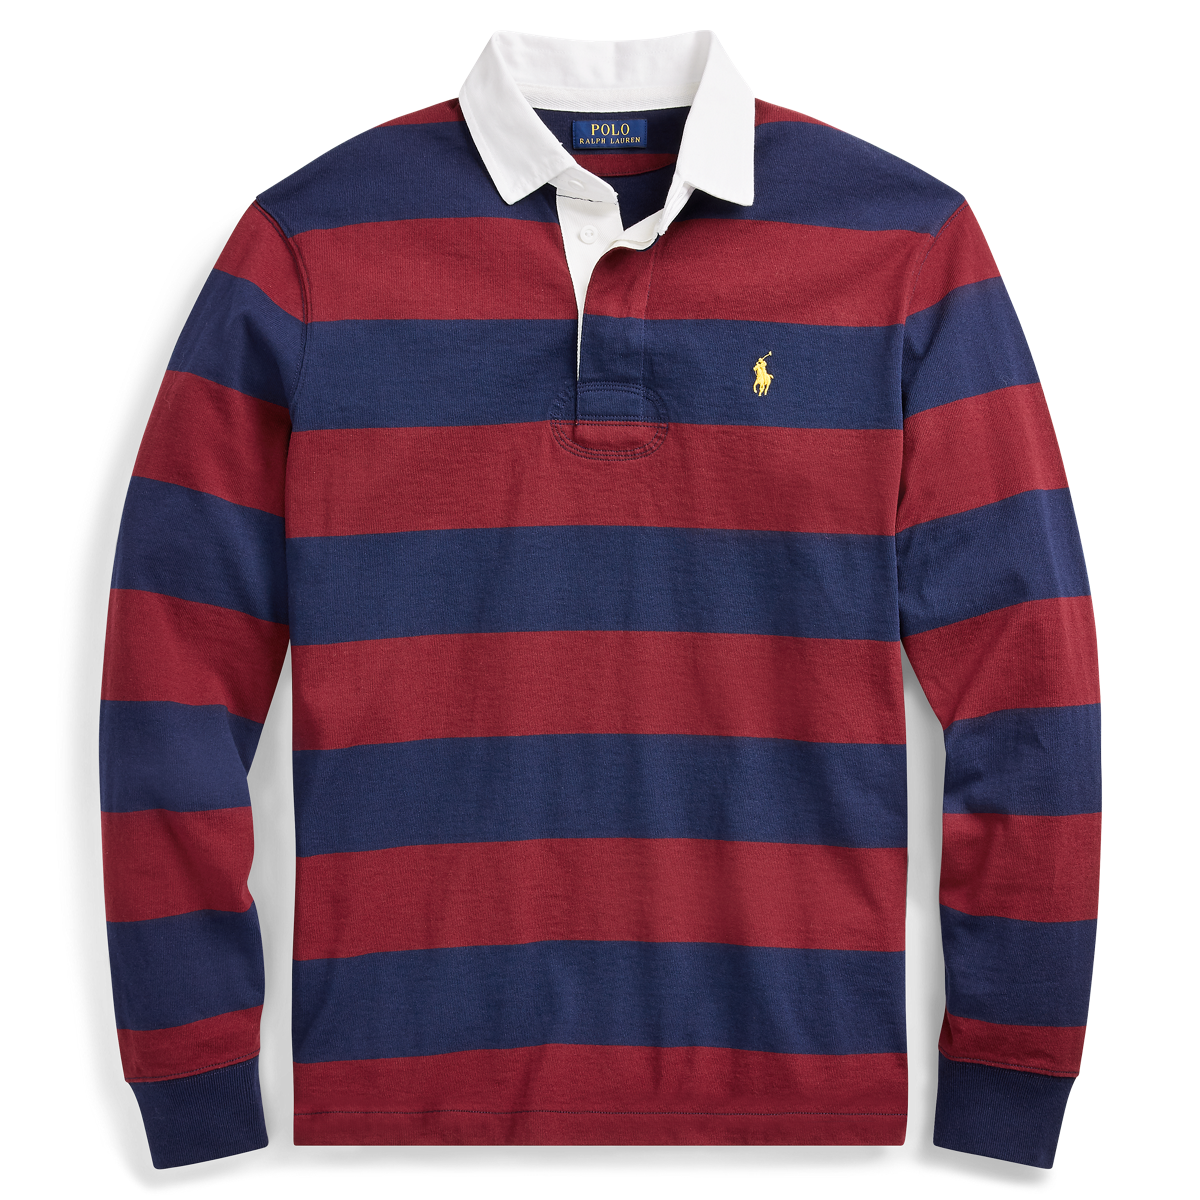 Polo Ralph Lauren Big /& Tall Big Pony Polo Rugby RED Shirt  FREE SHIPPING